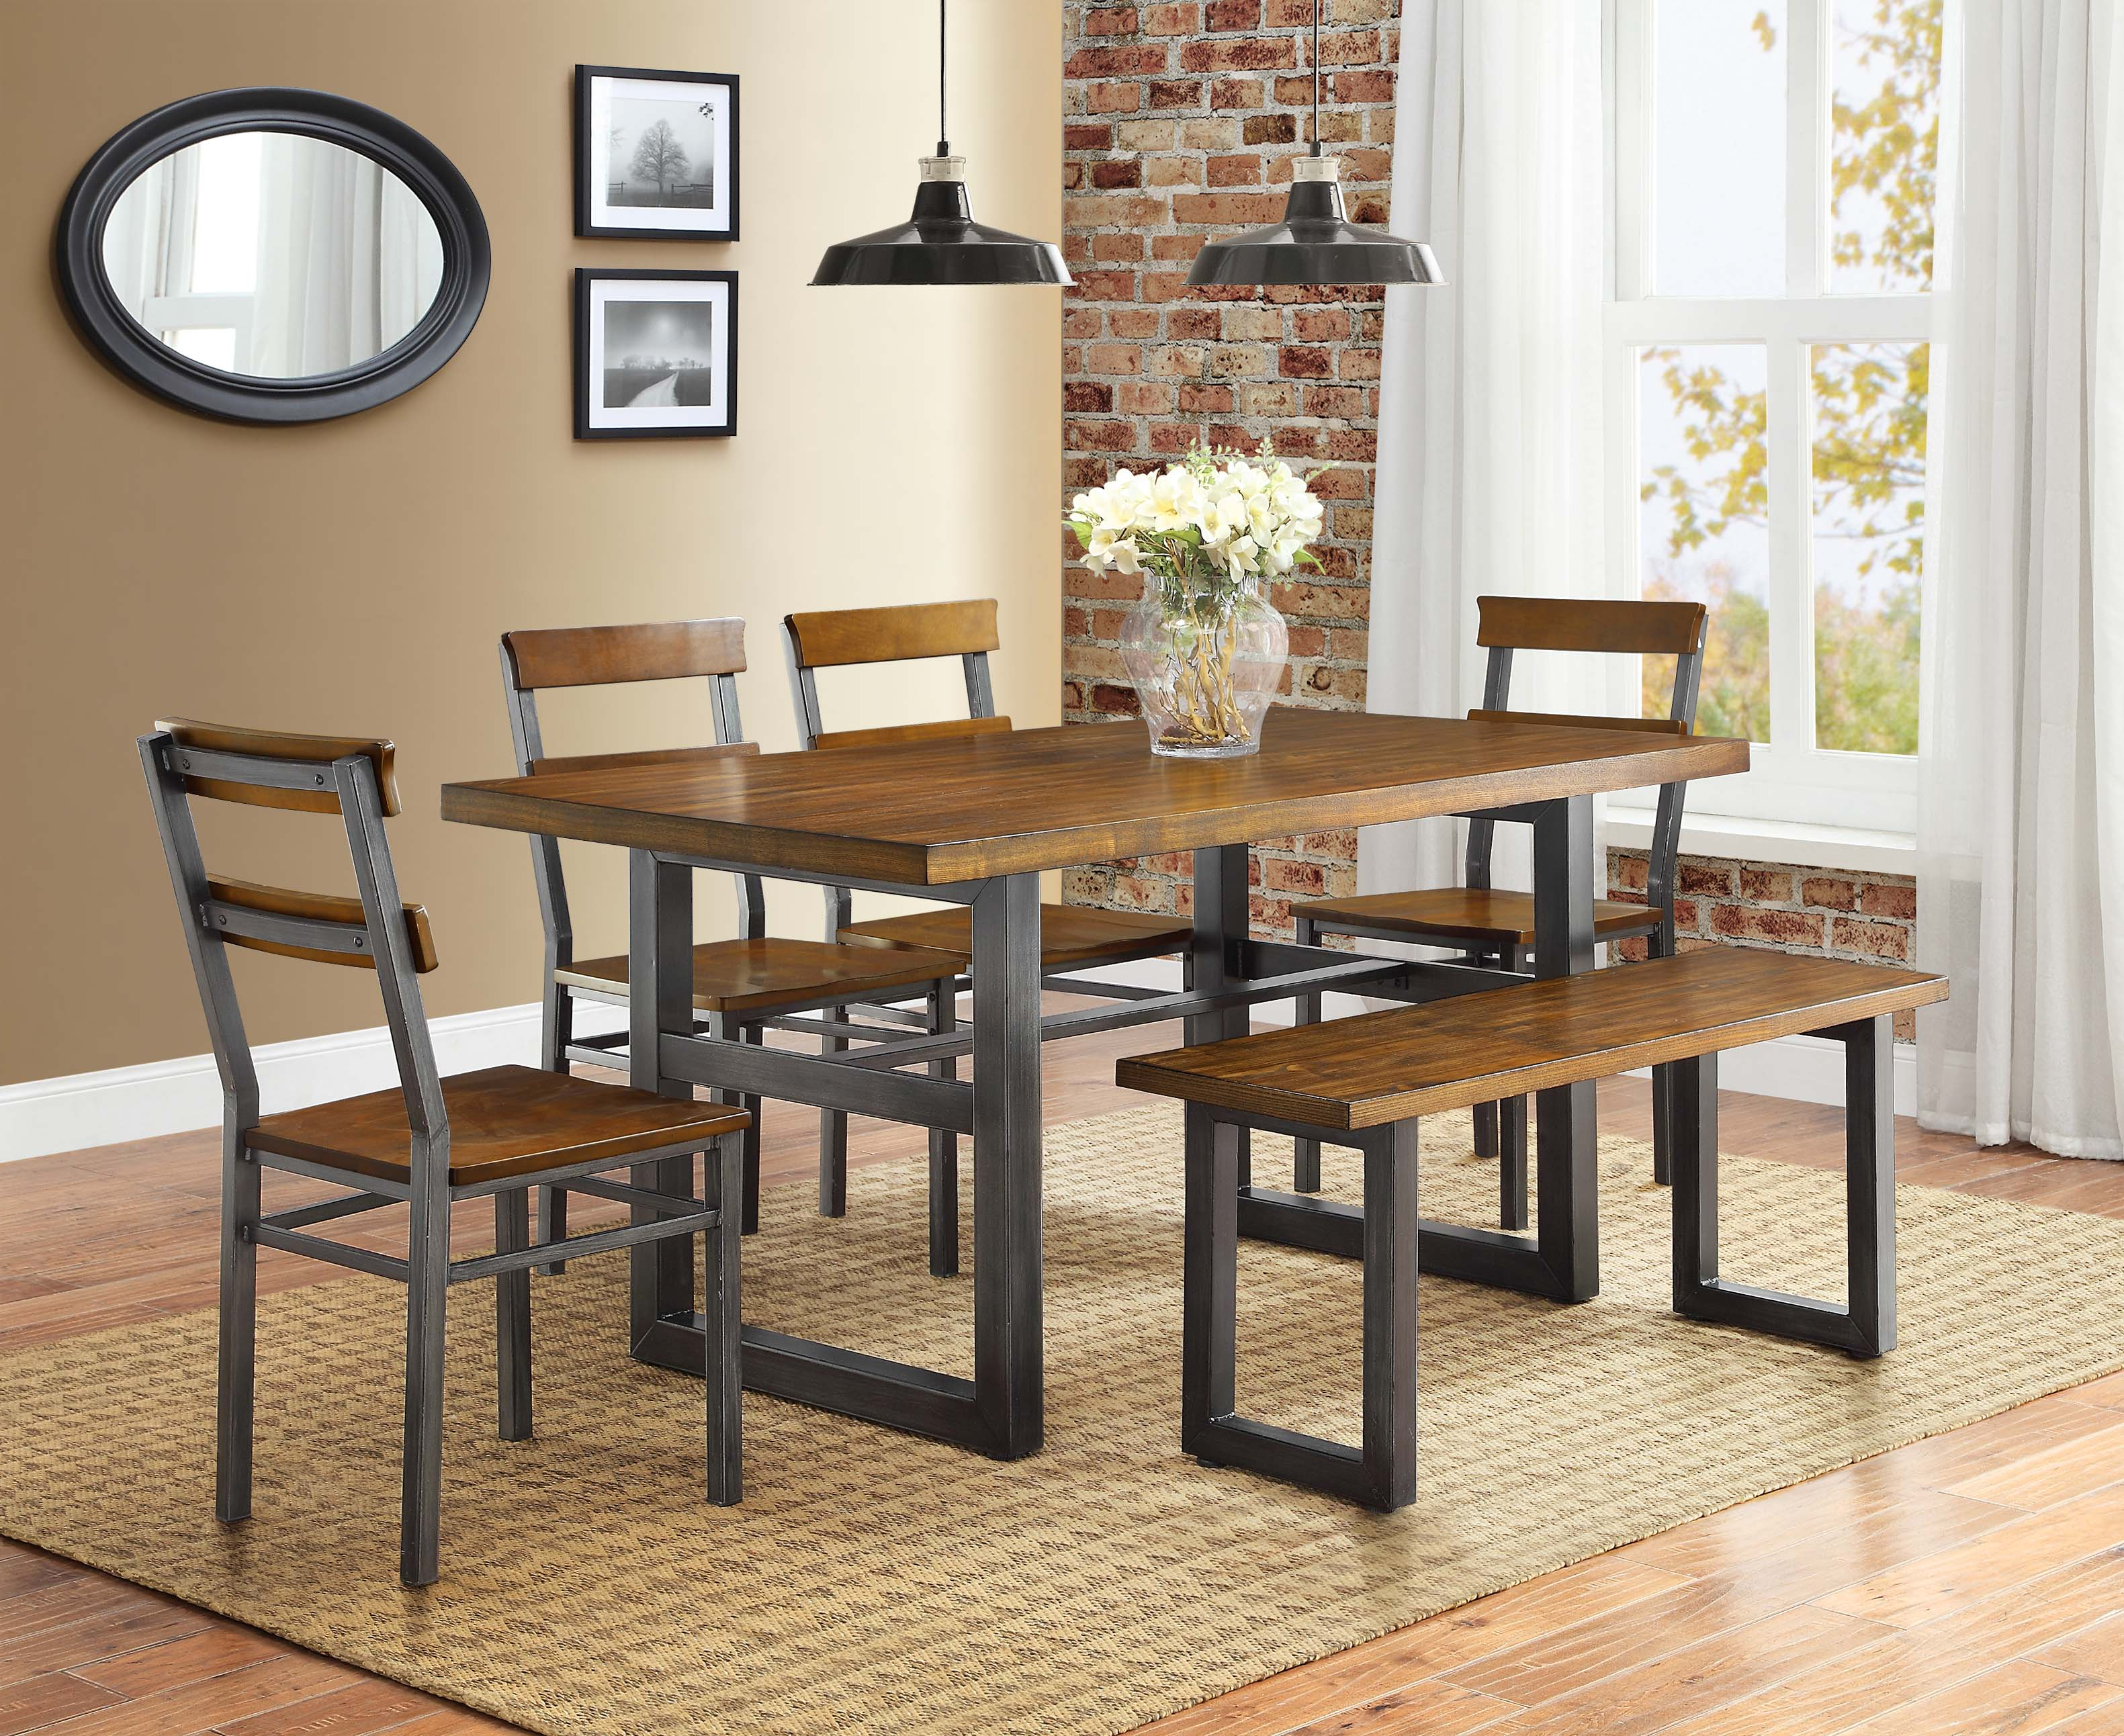 Better homes and gardens mercer collection - Better homes and gardens mercer dining table ...